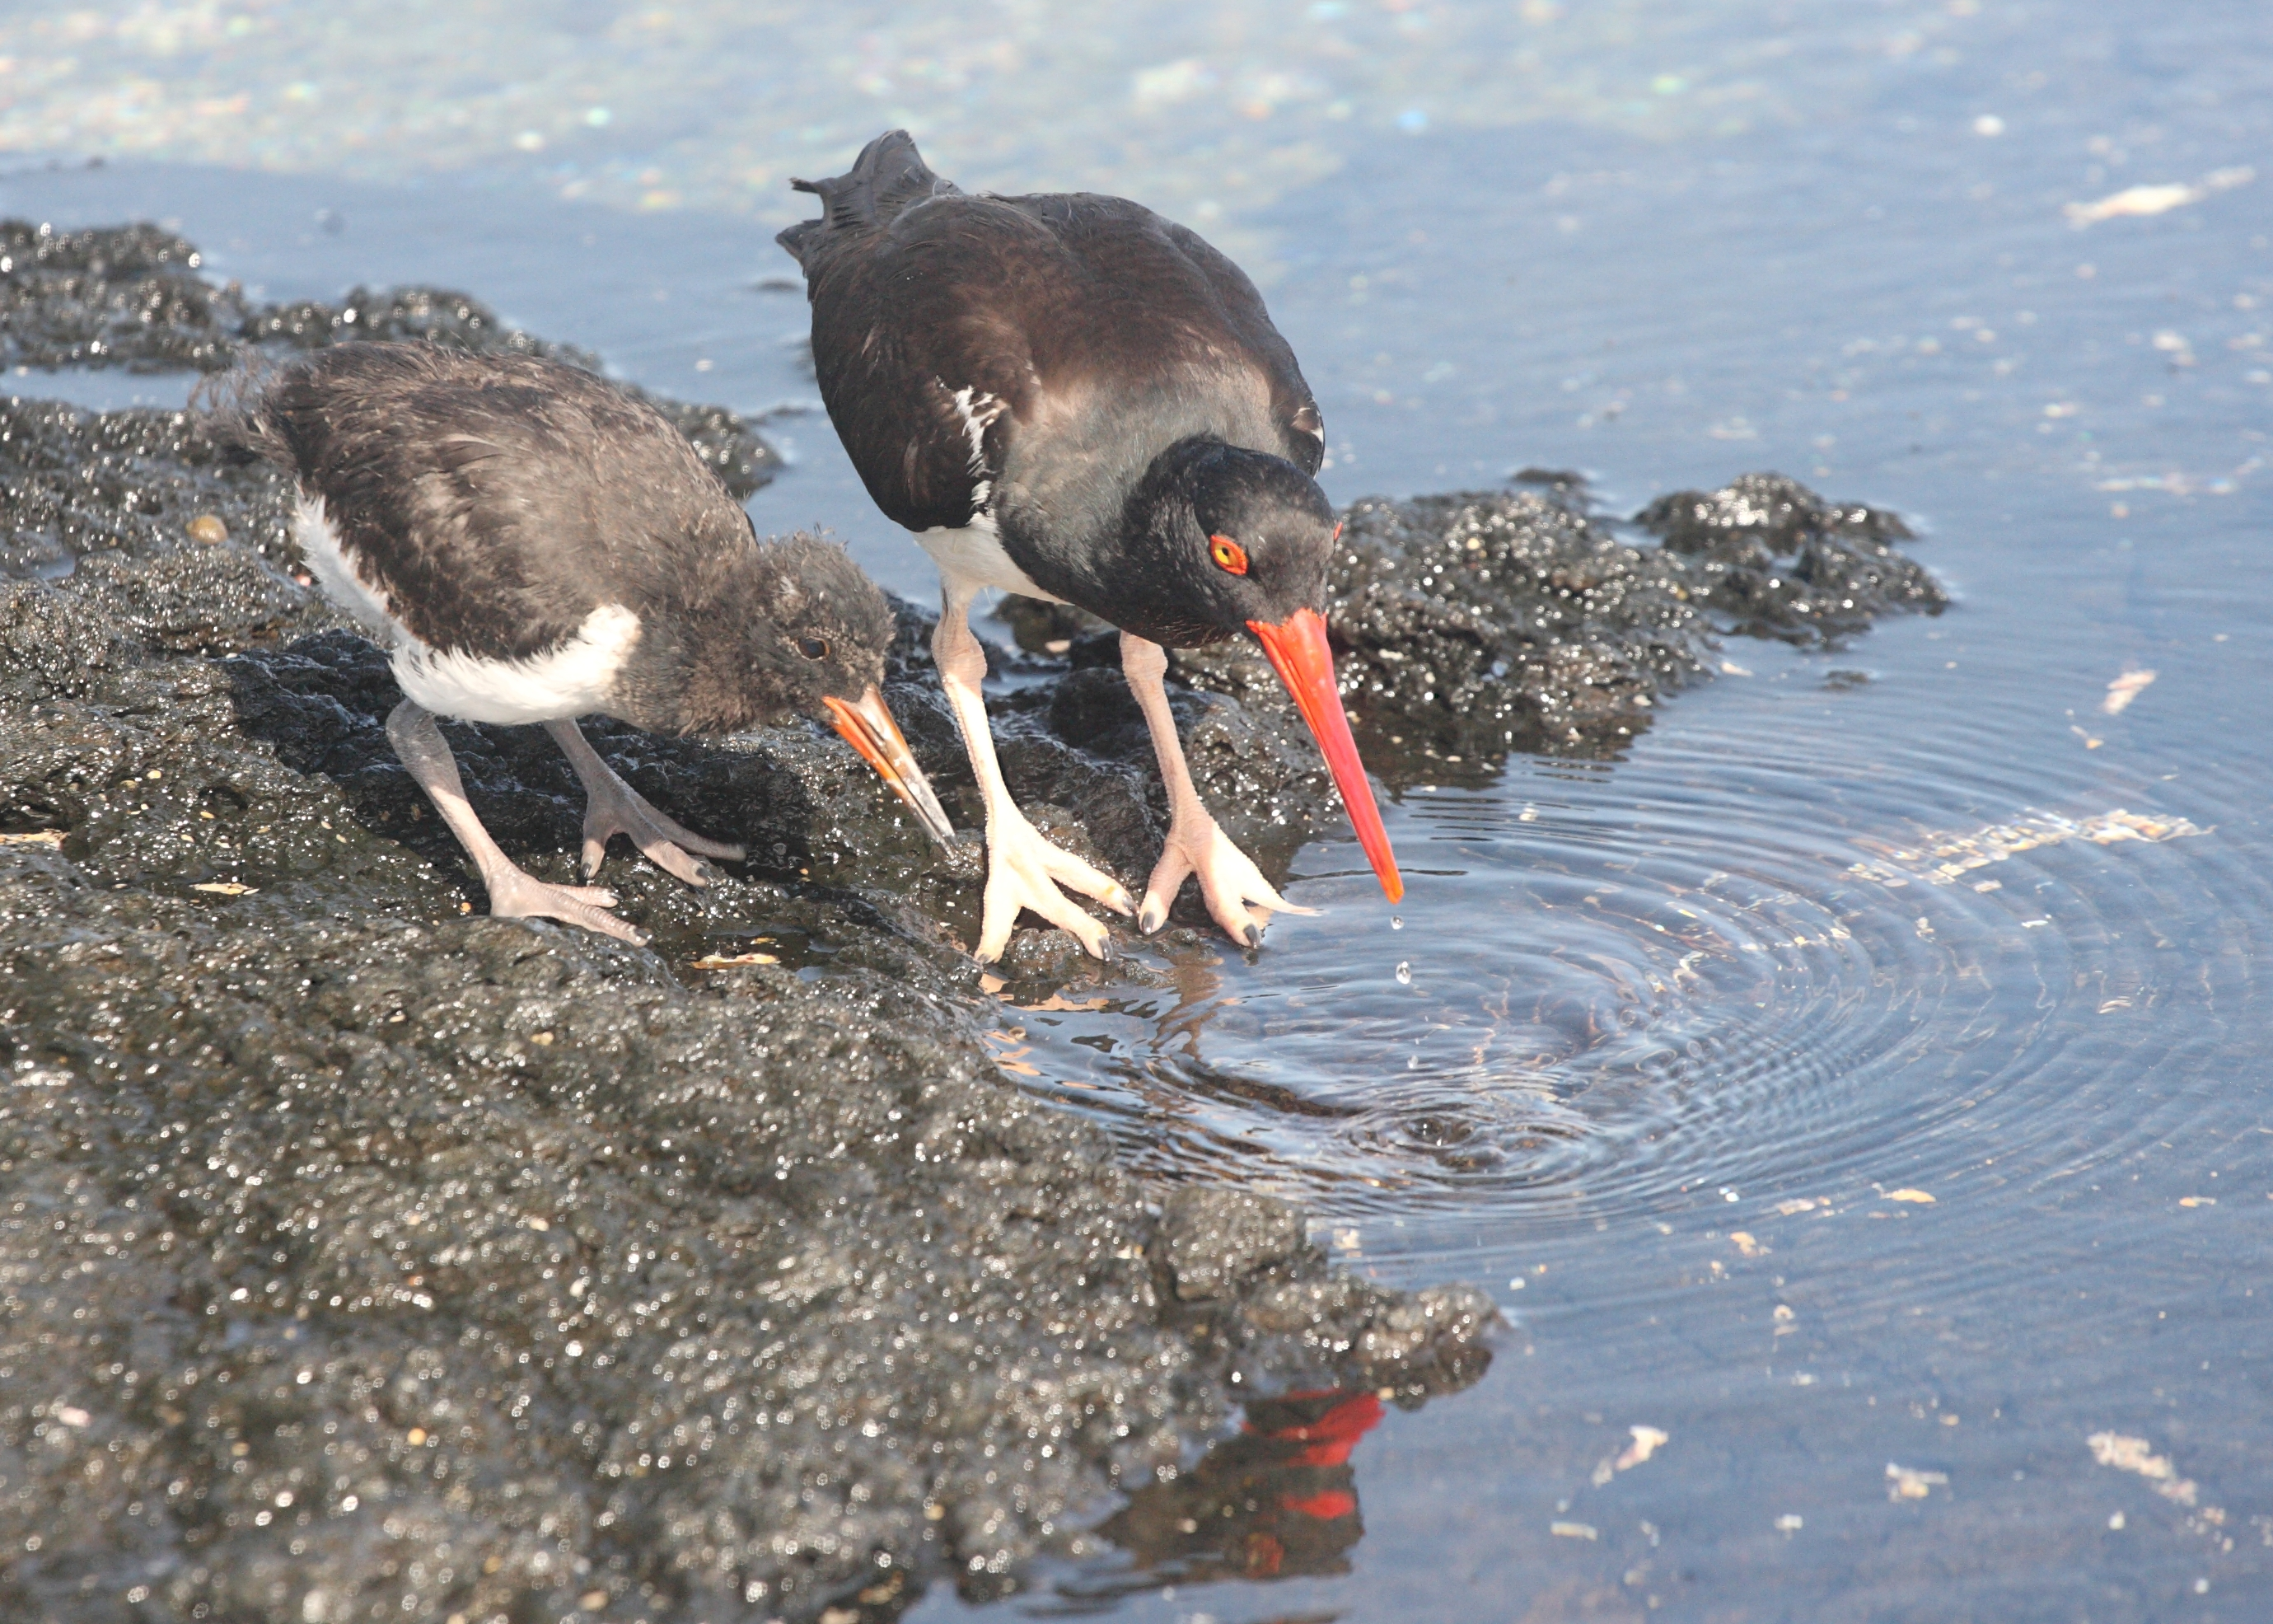 American oyster catcher